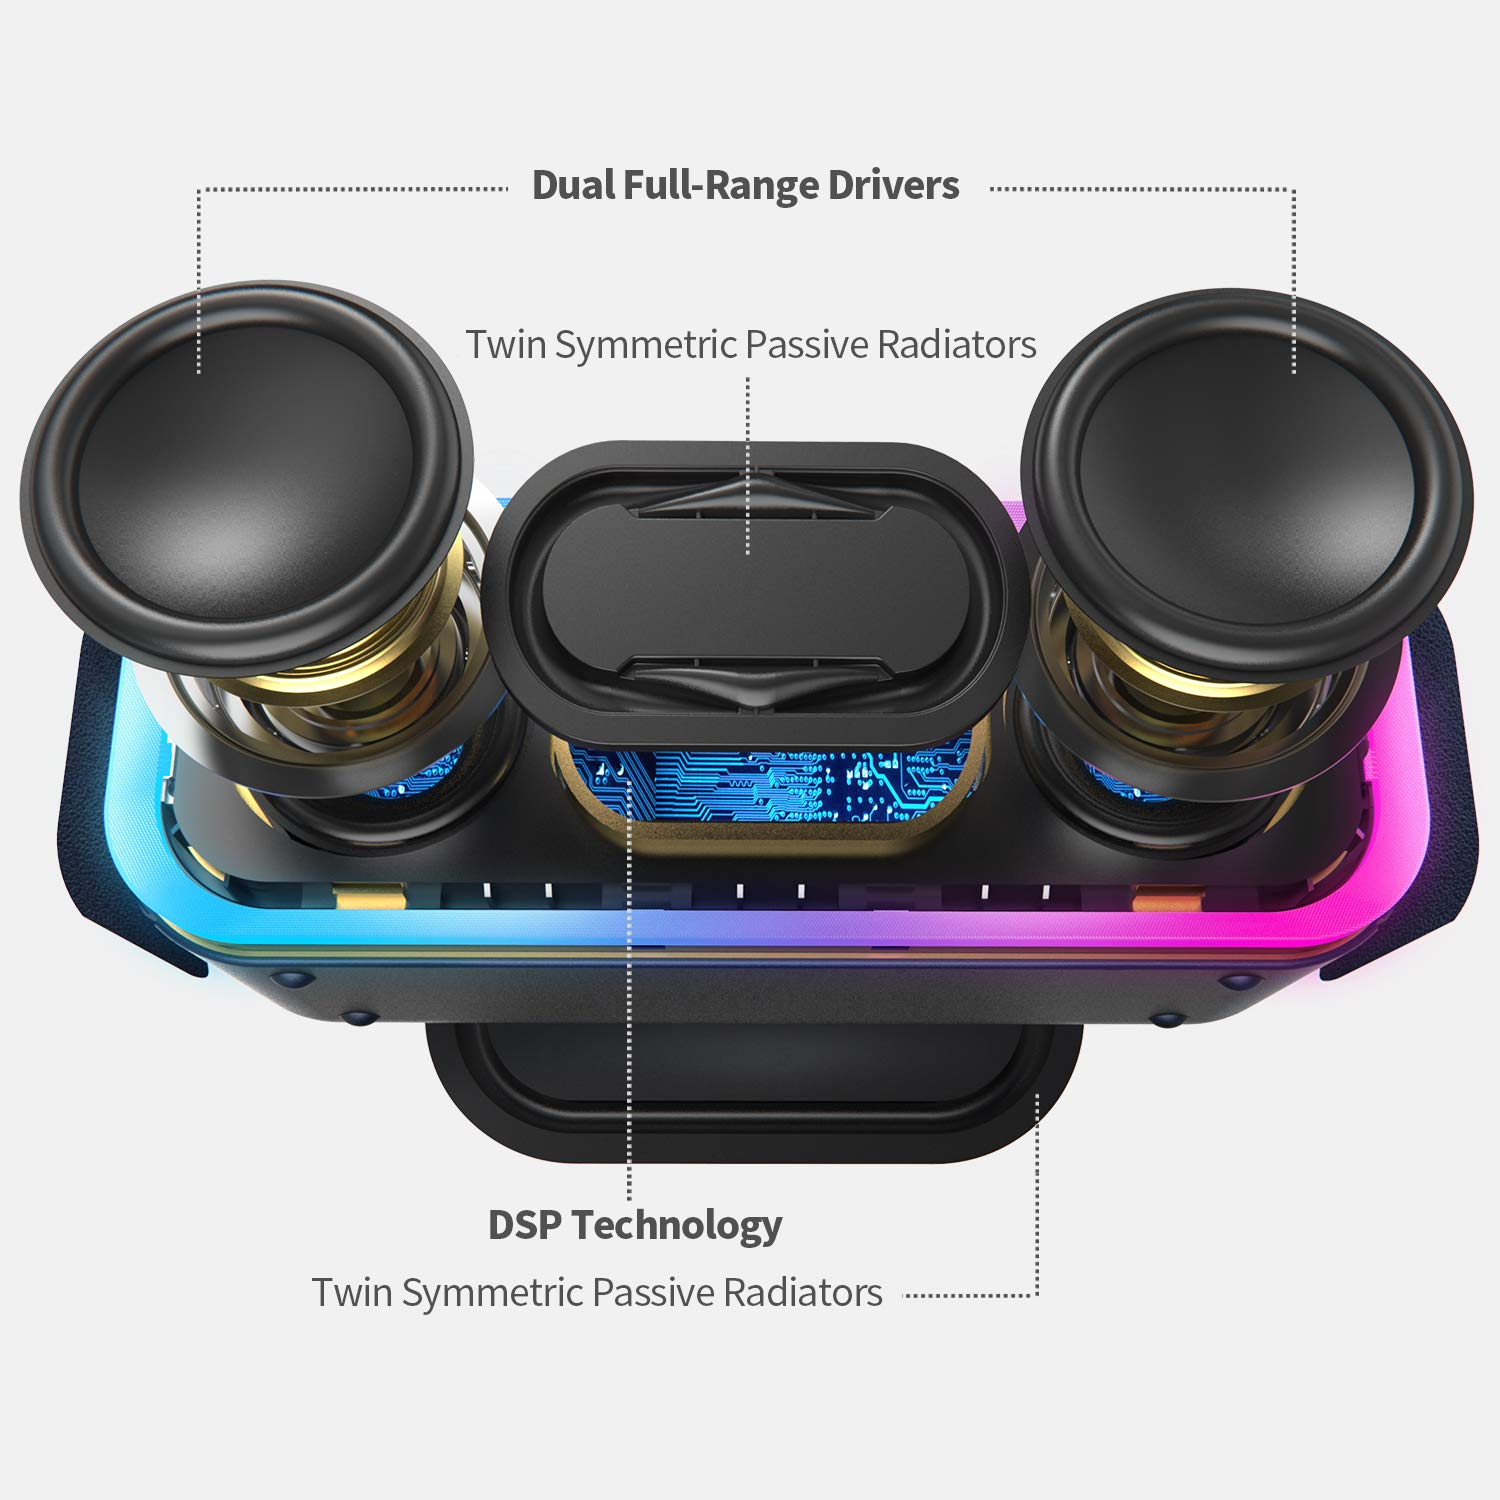 Blue Mixed Colors Lights DOSS SoundBox Pro+ Wireless Bluetooth Speaker with 24W Impressive Sound Wireless Stereo Pairing Booming Bass 66 ft Bluetooth Range 15 Hrs Battery Life IPX5 Waterproof